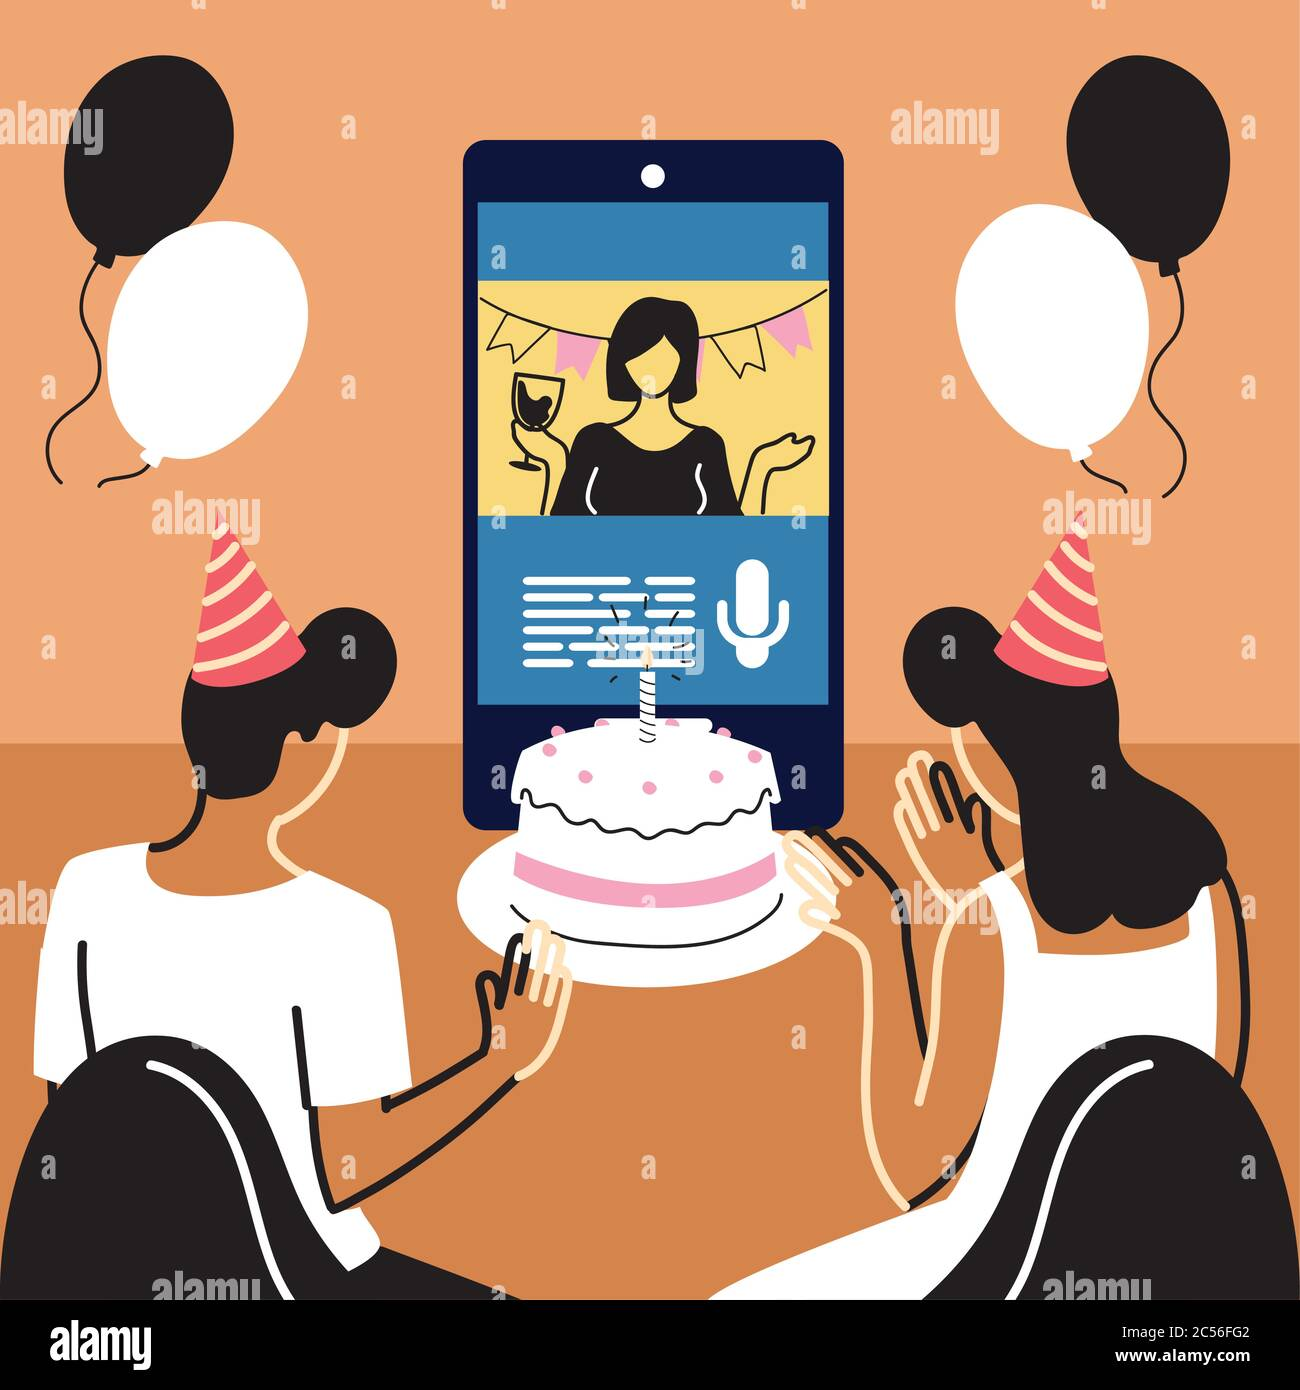 Man And Woman With Party Hat Waving Girl On Smartphone With Cake Design Happy Birthday And Video Chat Theme Vector Illustration Stock Vector Image Art Alamy